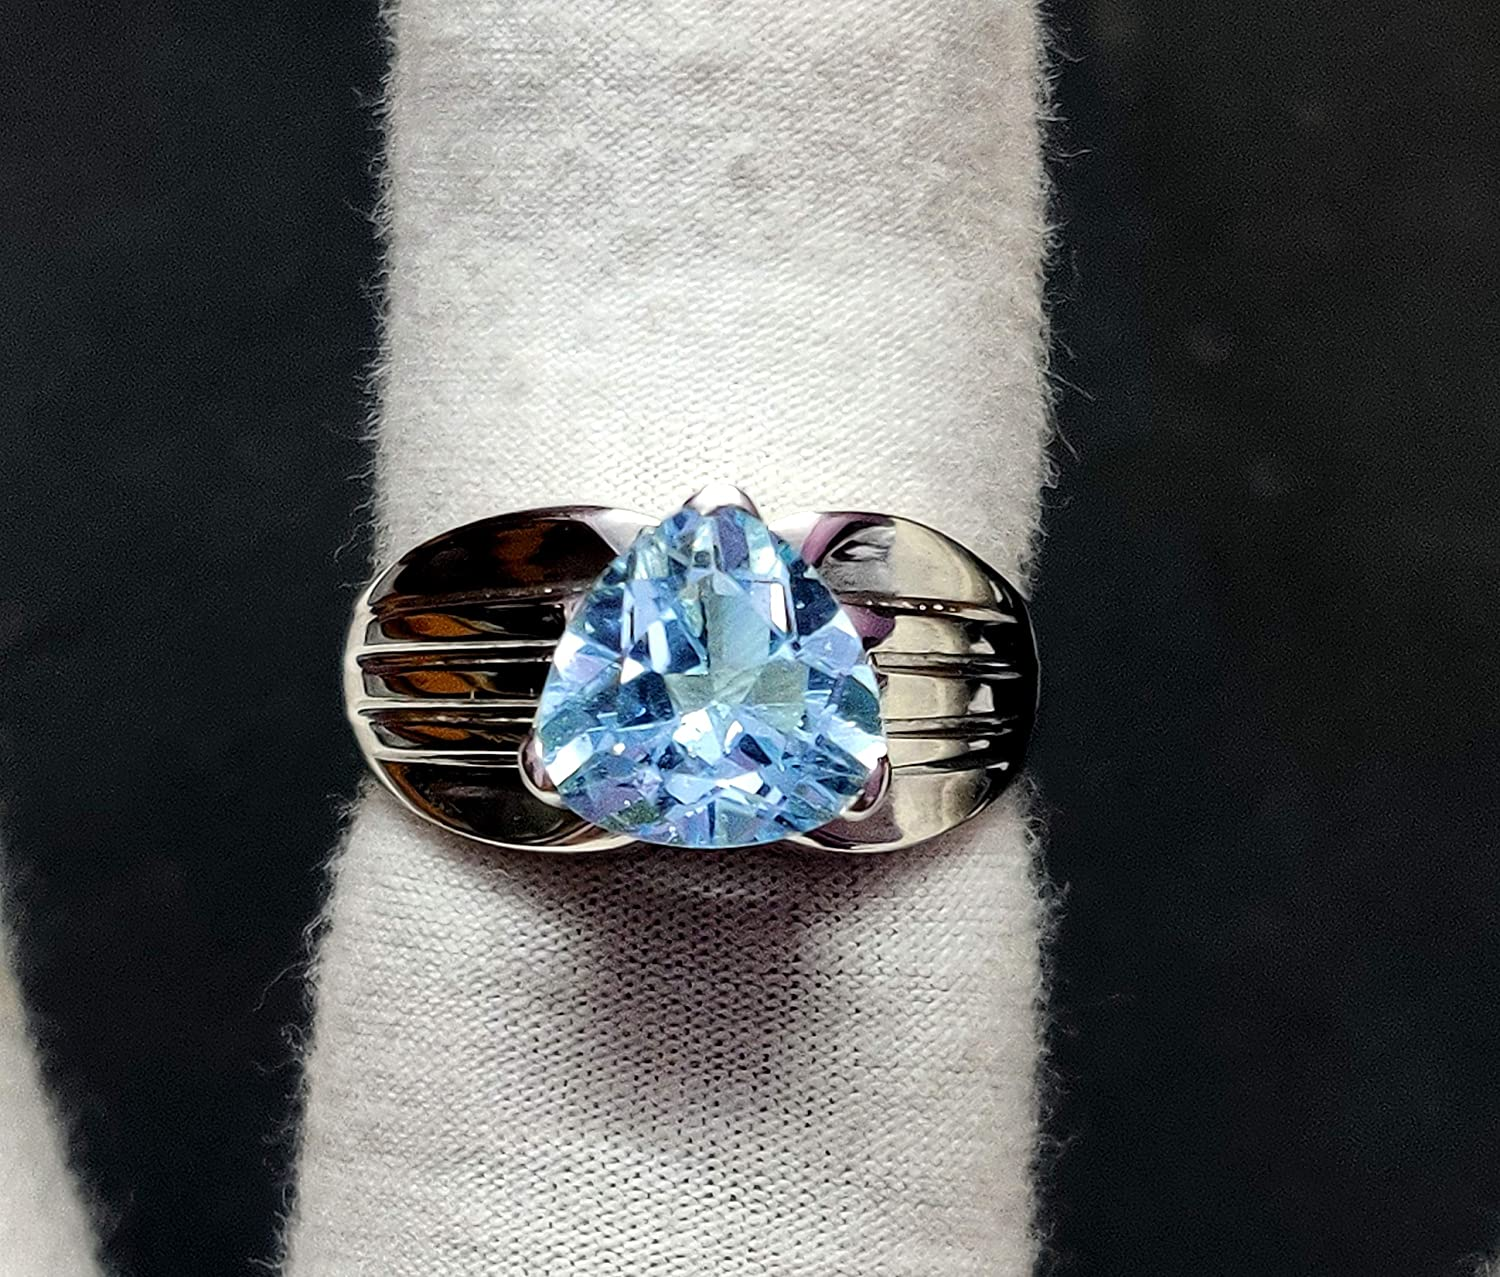 925 Silver Reservation Blue Topaz Statement Ring Band Ct 10 5 Attention brand mm